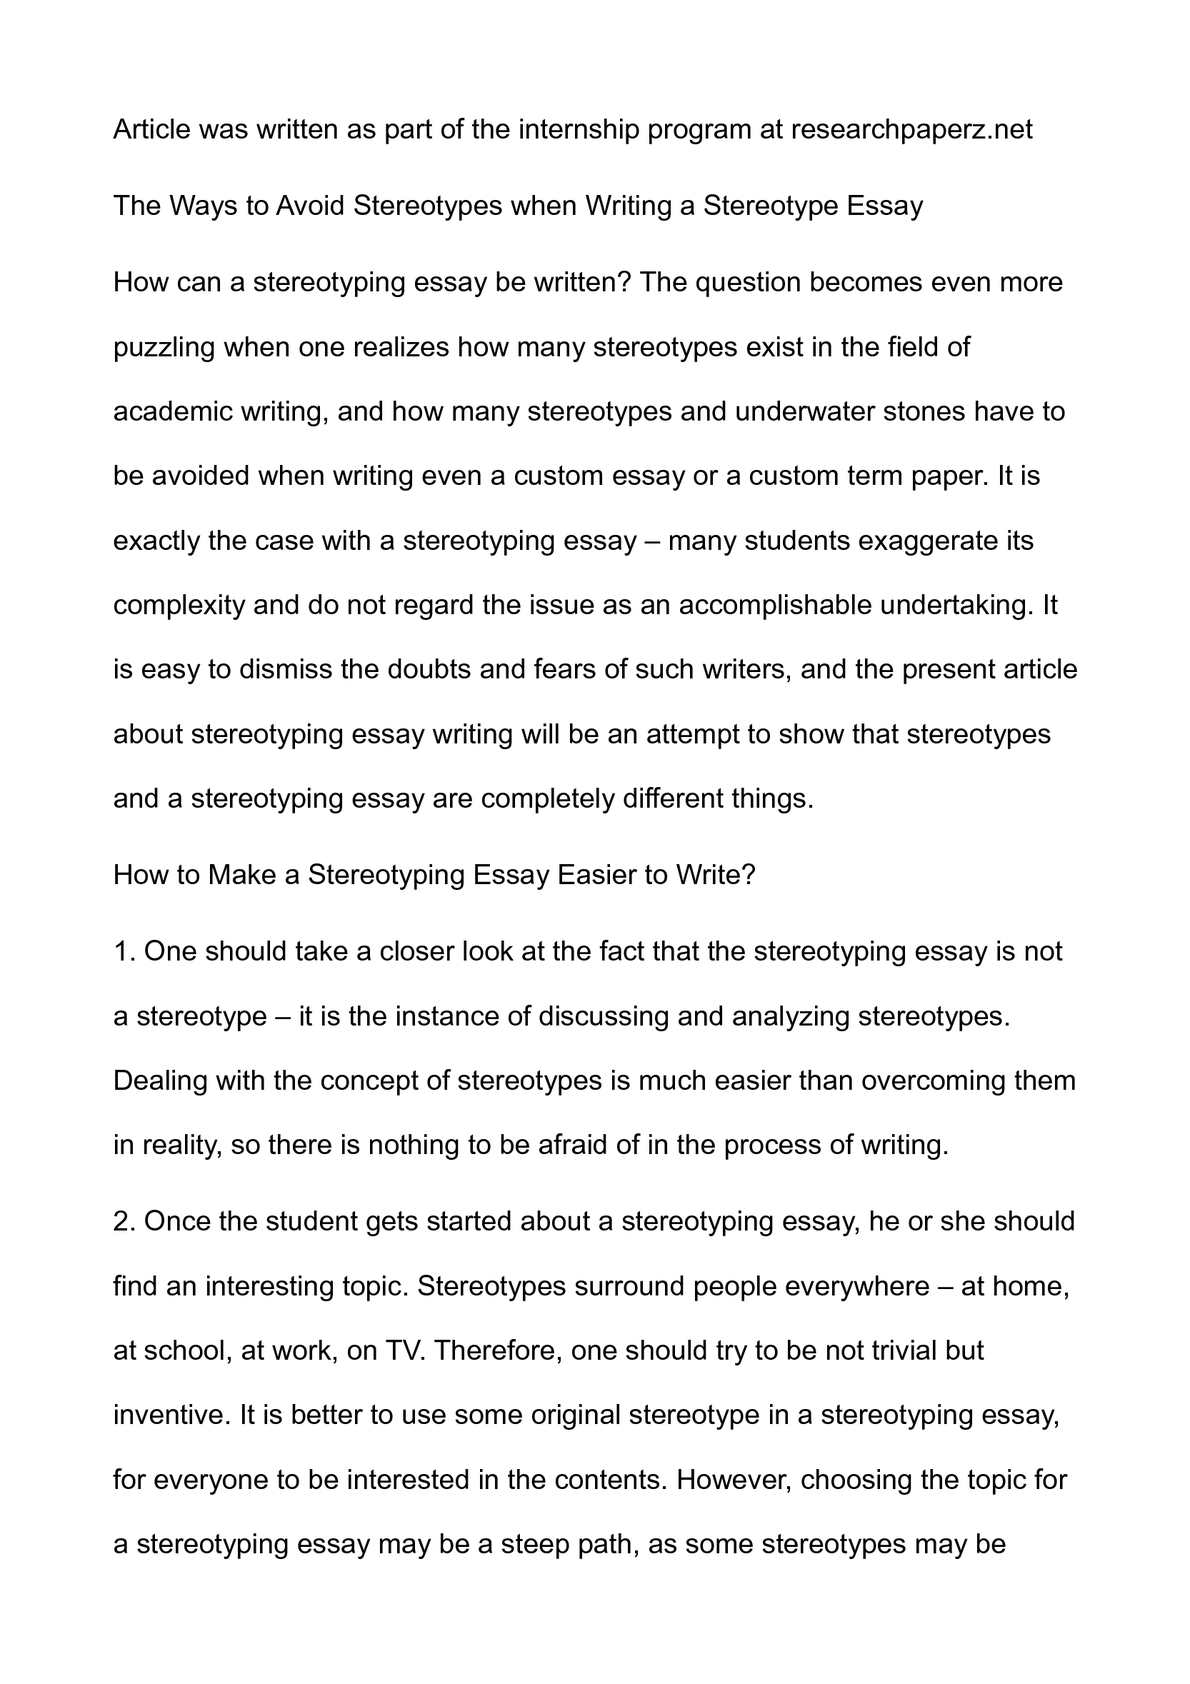 calamo   the ways to avoid stereotypes when writing a stereotype essay